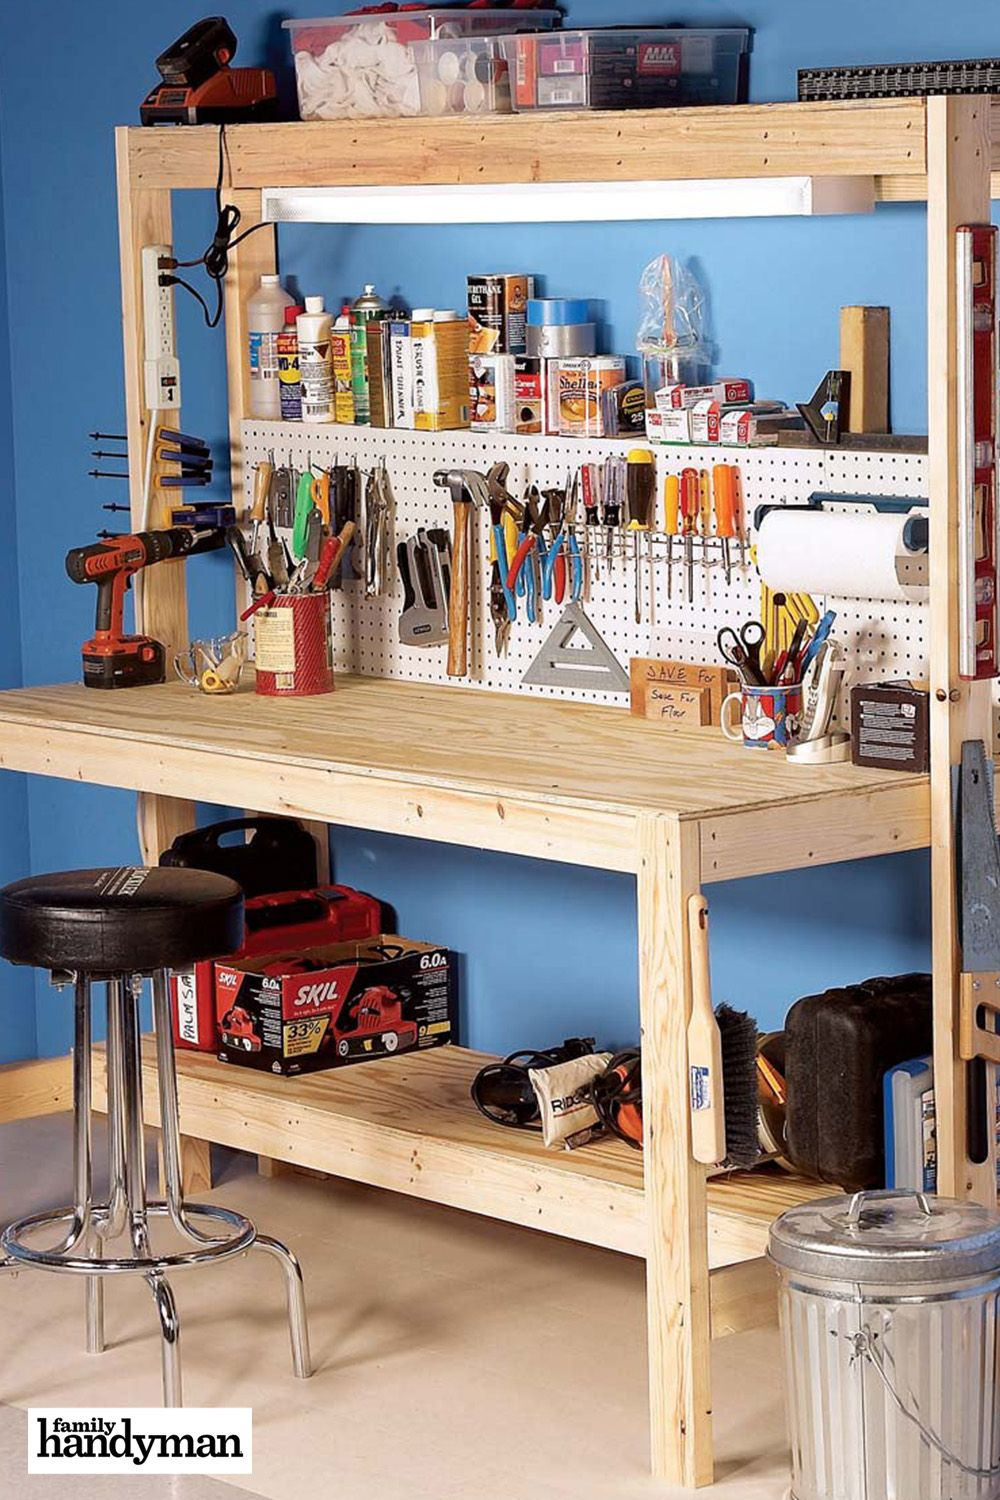 12 Fabulous Diy Projects Costing Less Than 50 In 2020 Building